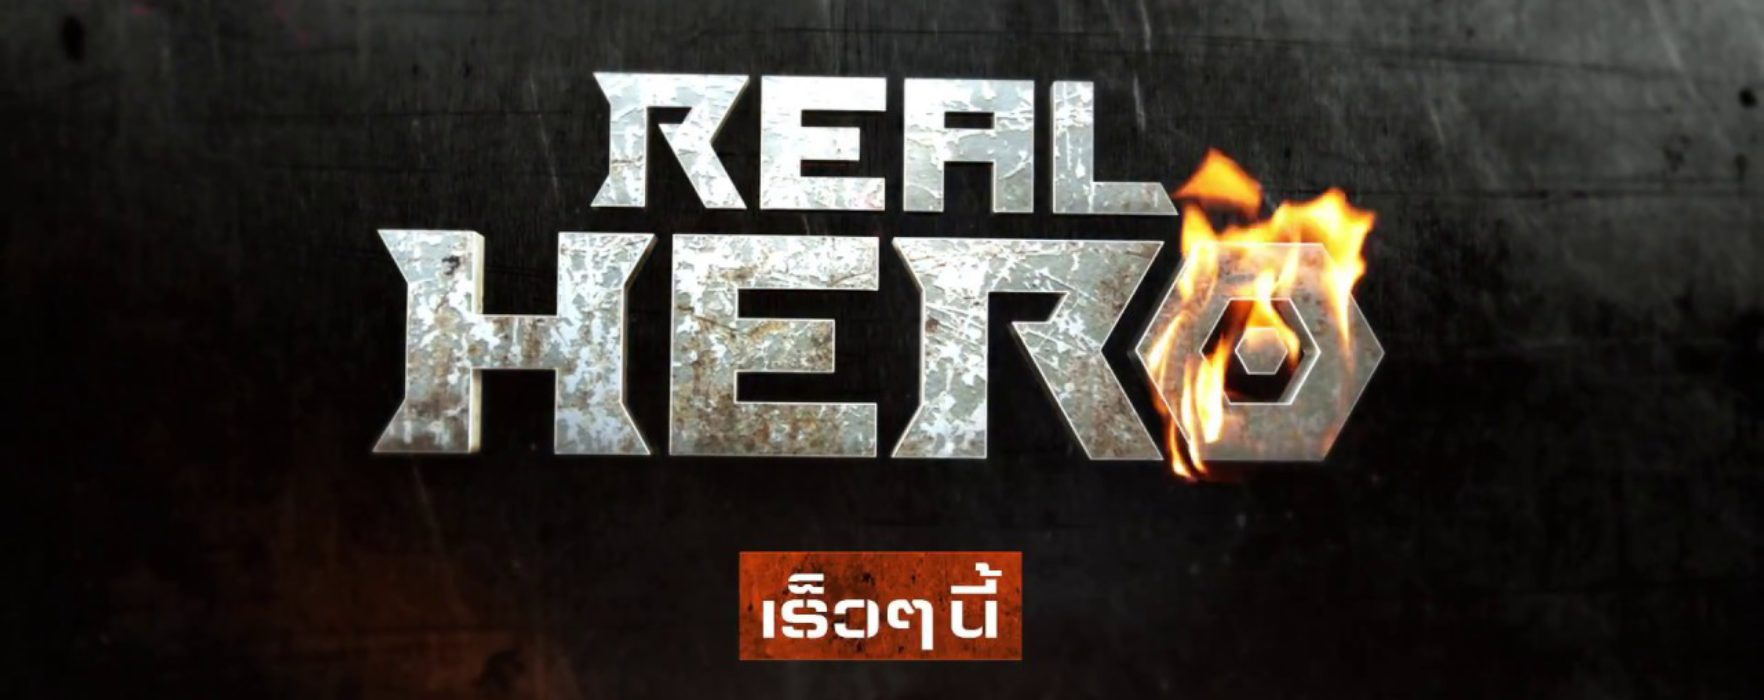 New event coming soon on Thai TV: Real Hero Muay Thai